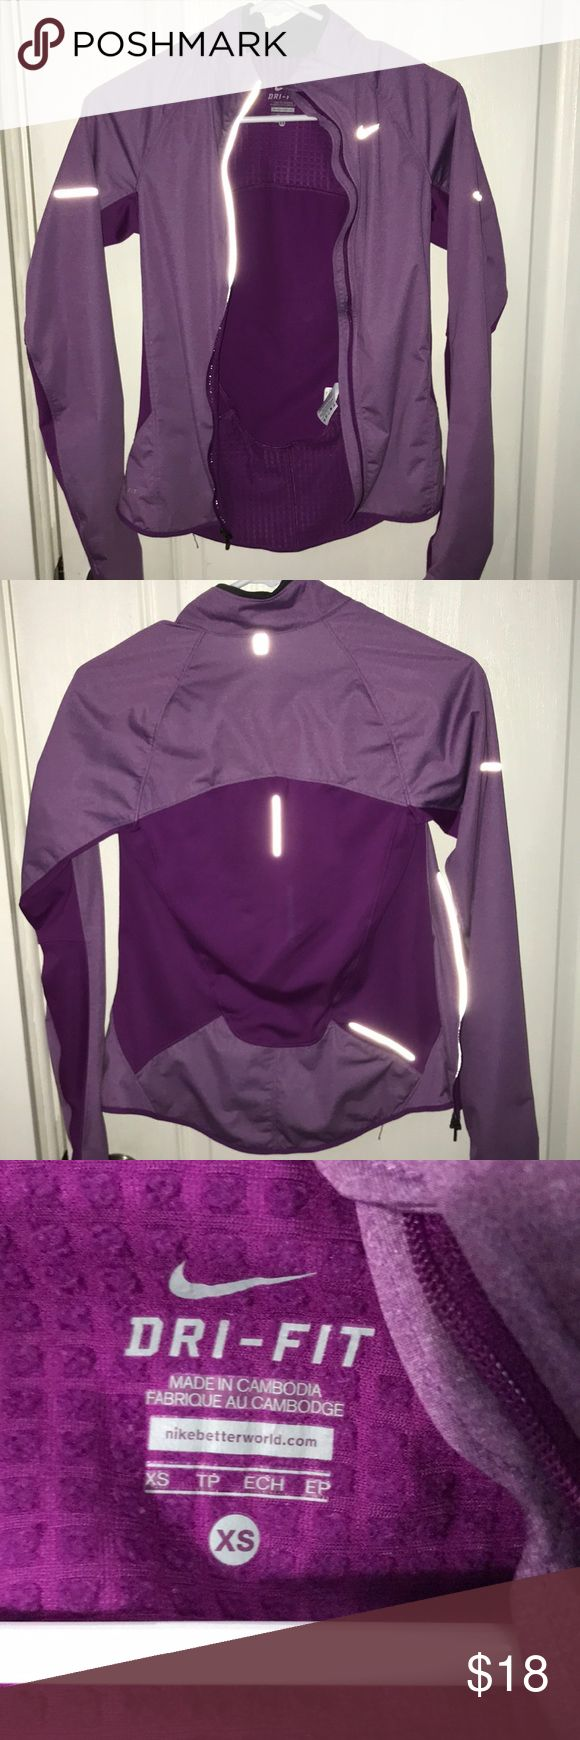 Purple Nike running jacket Great condition super comfy and warm light running coat Nike Other